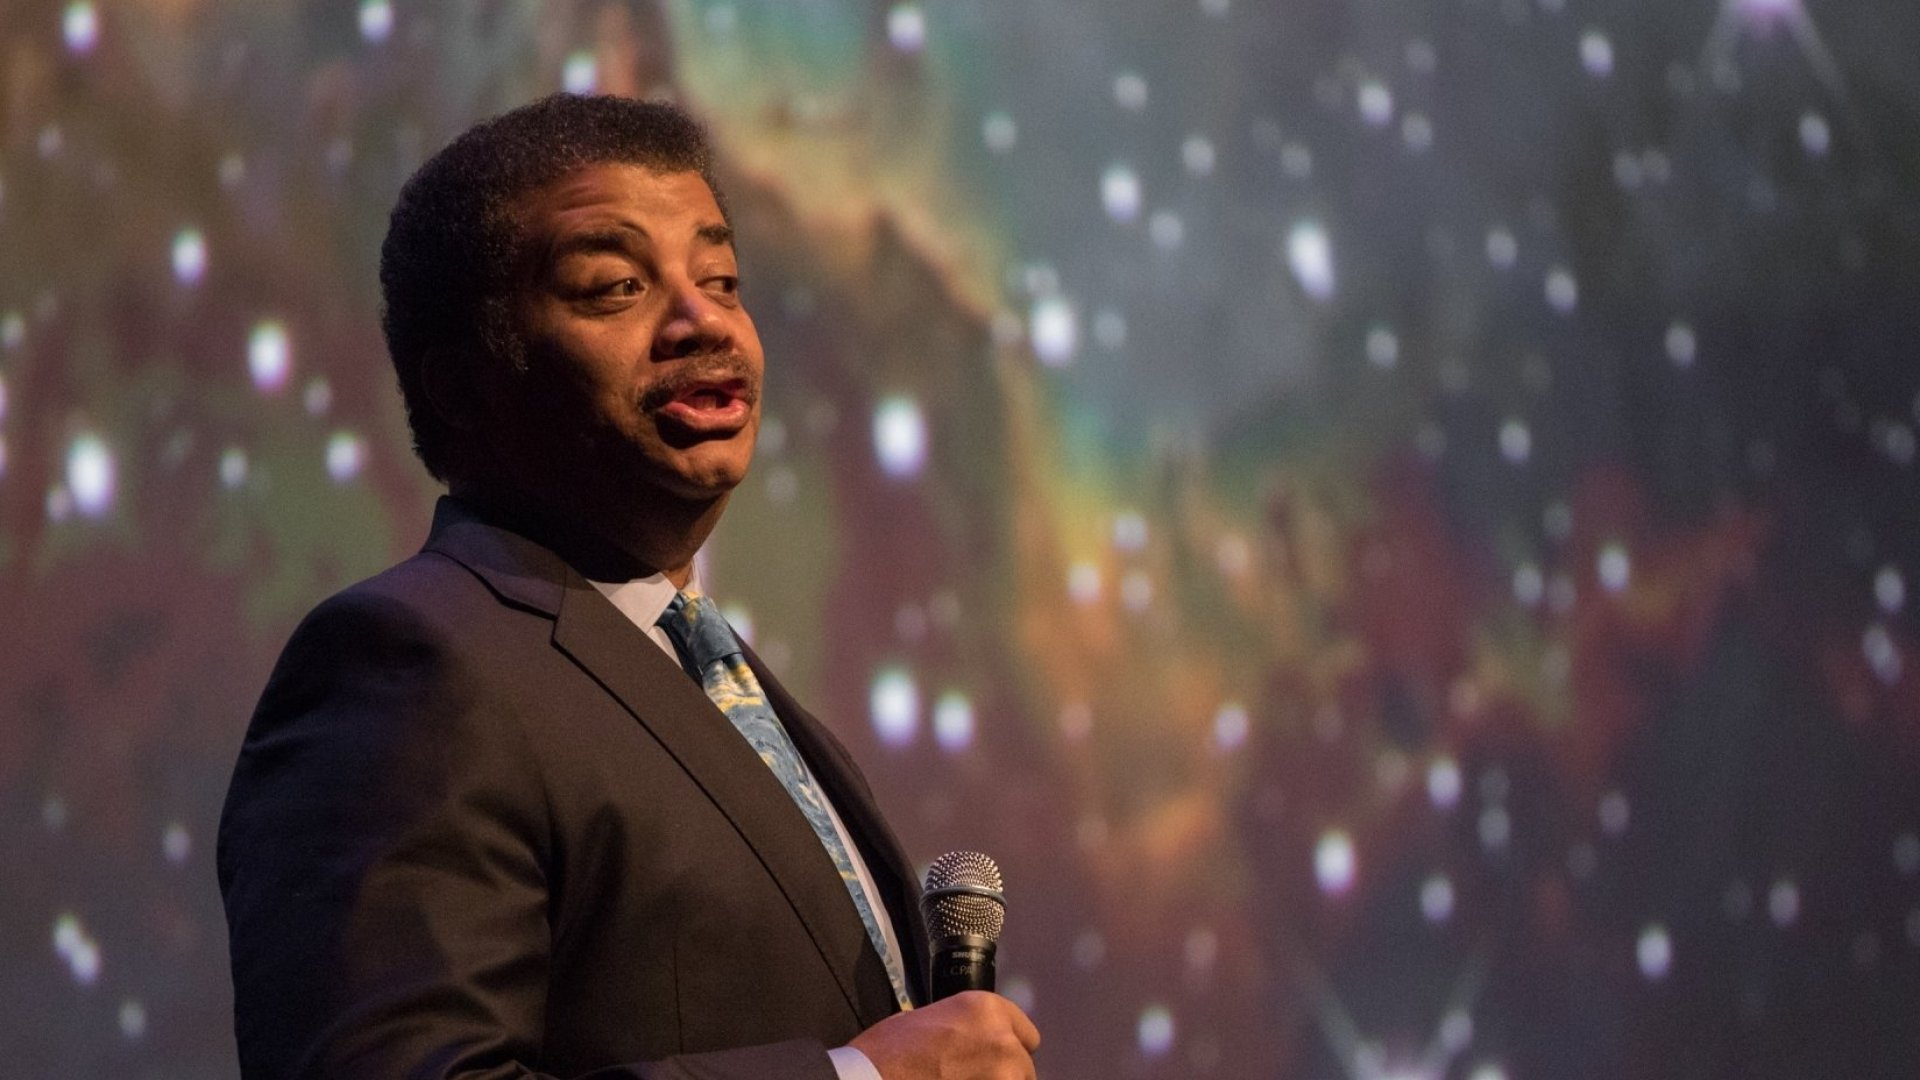 Neil deGrasse Tyson's Tweet About Mass Shootings Was Bad. His Apology May Have Been Worse